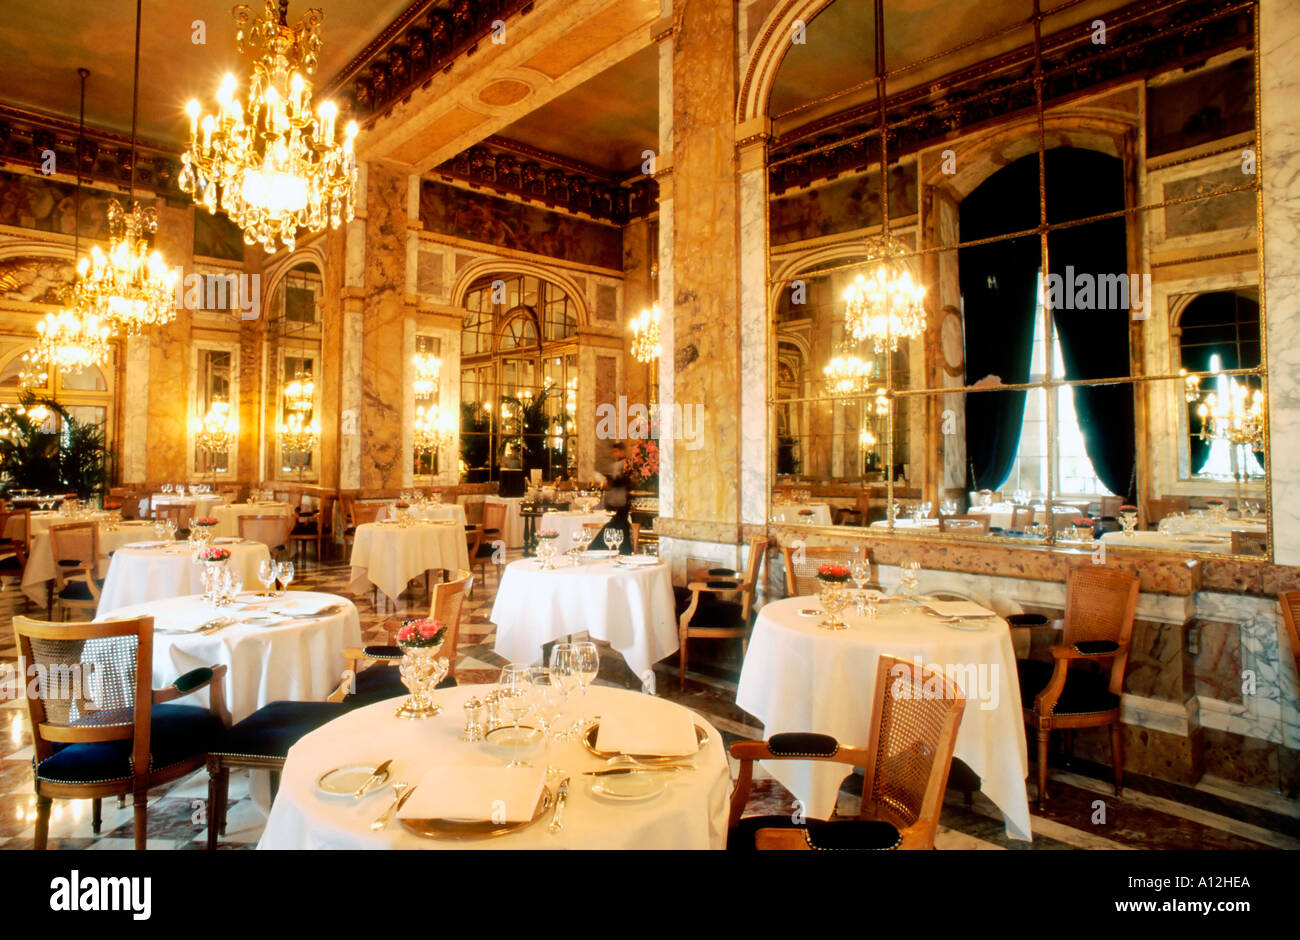 Paris france french haute cuisine restaurant dining room for Restaurant cuisine francaise paris